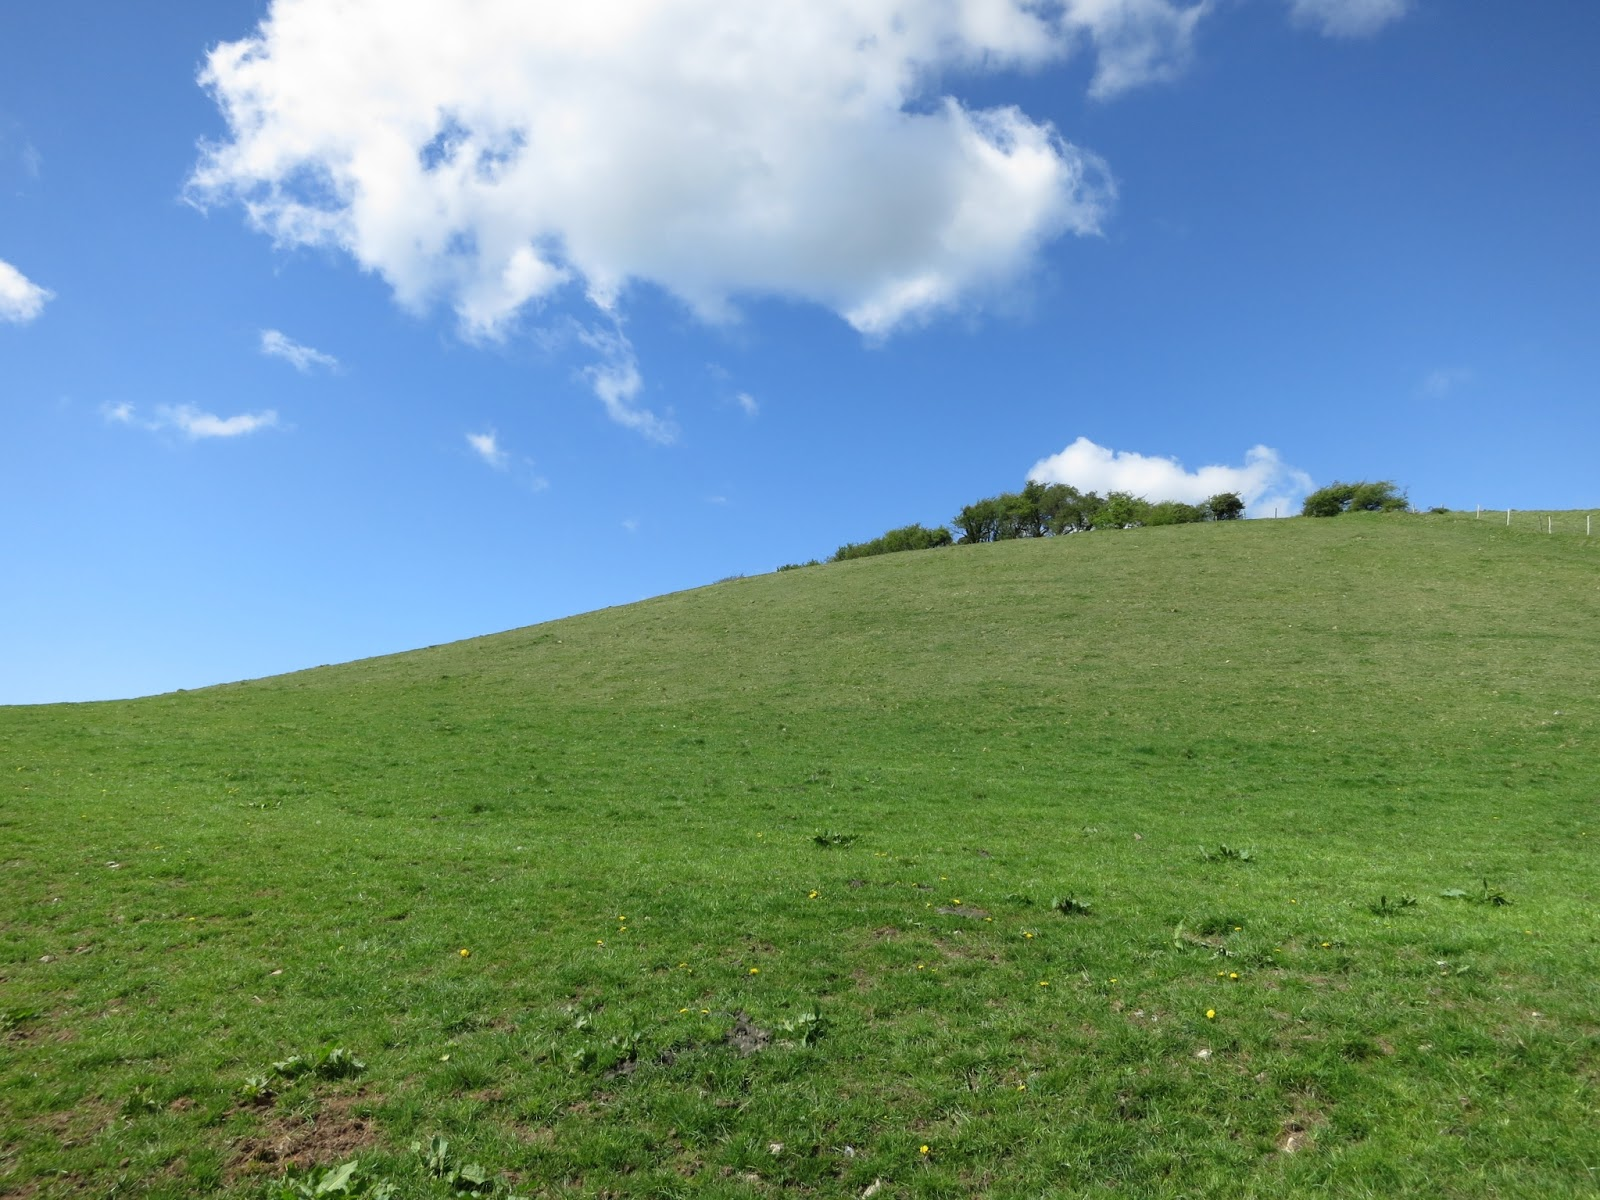 Trees on a tall, wide, grassy hill.